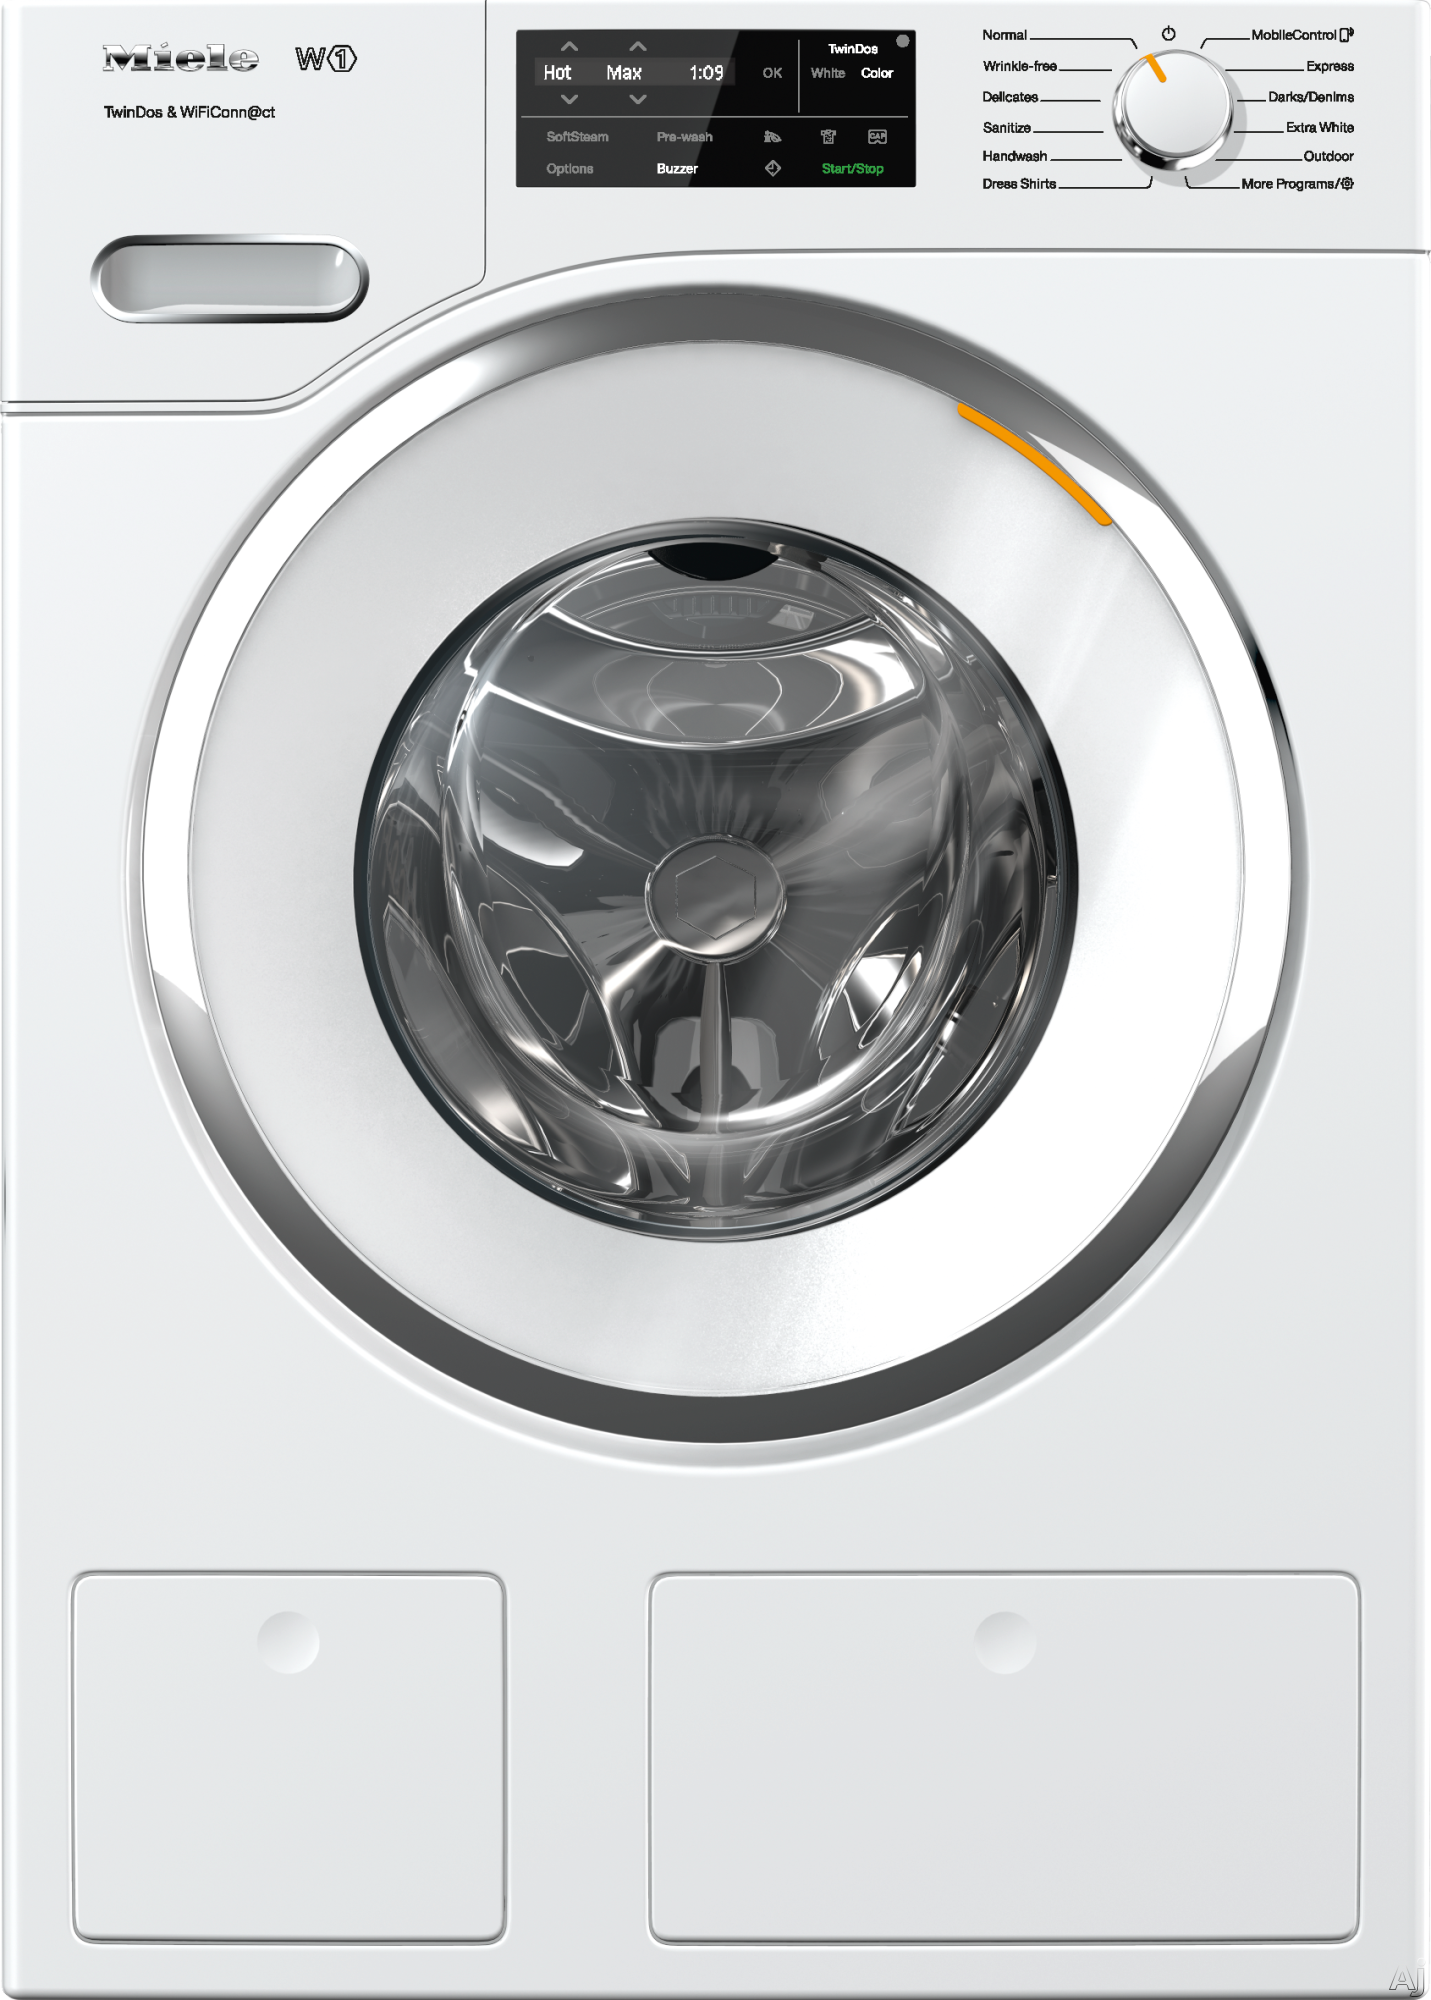 Miele WWH660WCS 24 Inch Front Load Washer with HoneyComb Drum, 2.26 Cu. Ft. Capacity, TwinDos, 13 Wash Programs, CapDosing, SoftStream, WiFiConn@ct, Eco Feedback Indicator, Energy Star, Delayed Start and Countdown Indicator WWH660WCS